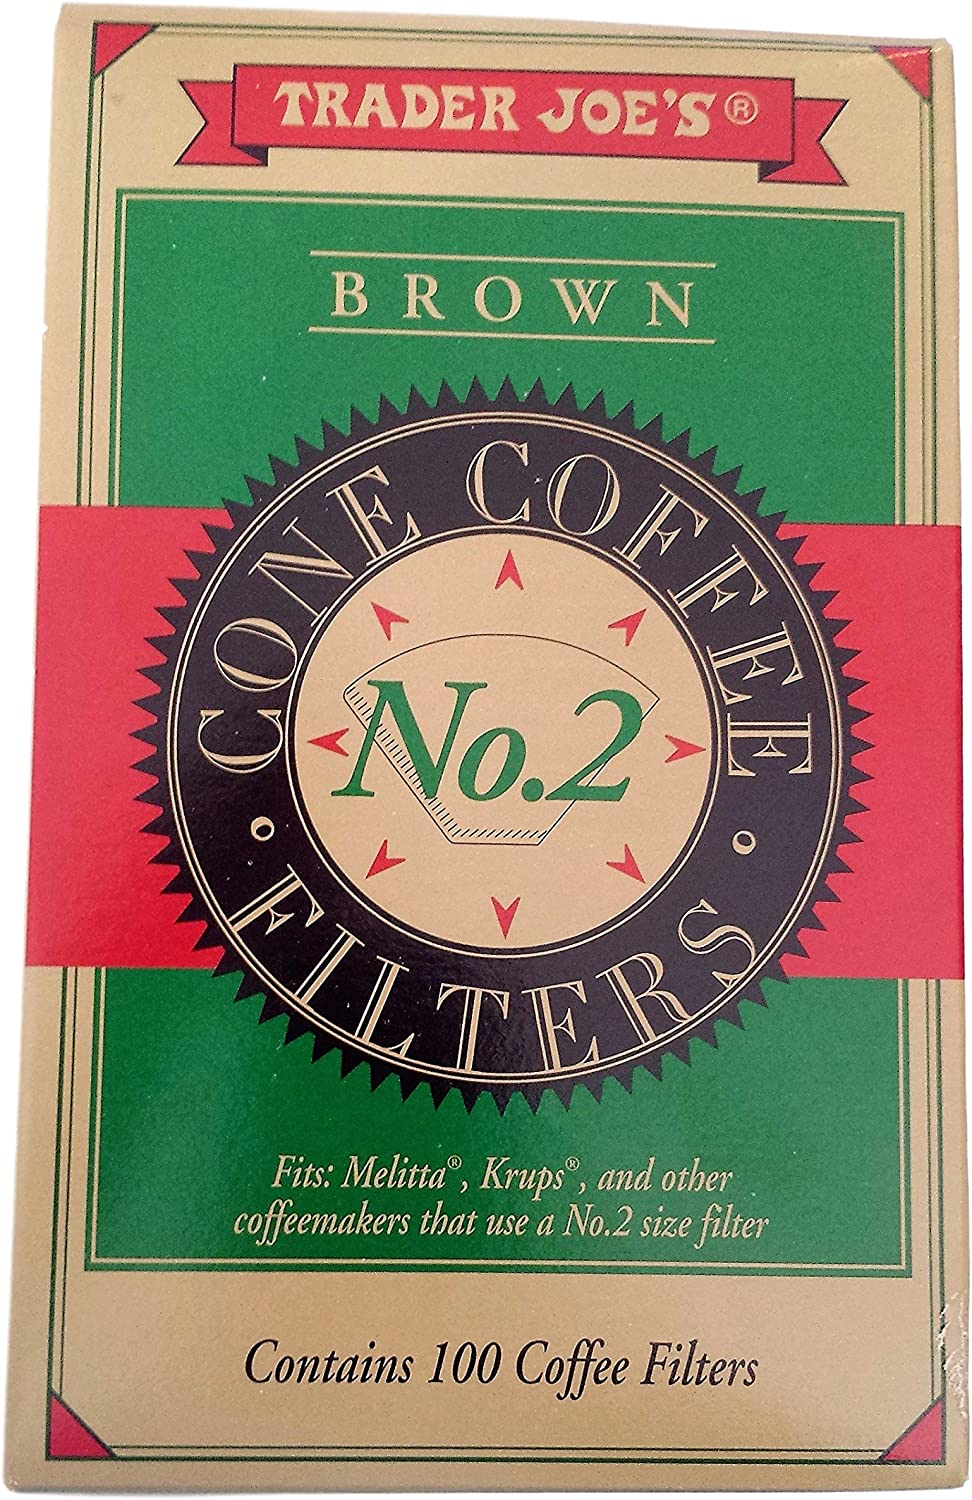 Trader Joes Brown Cone Coffee shopping 100 contains Time sale Filters No.2